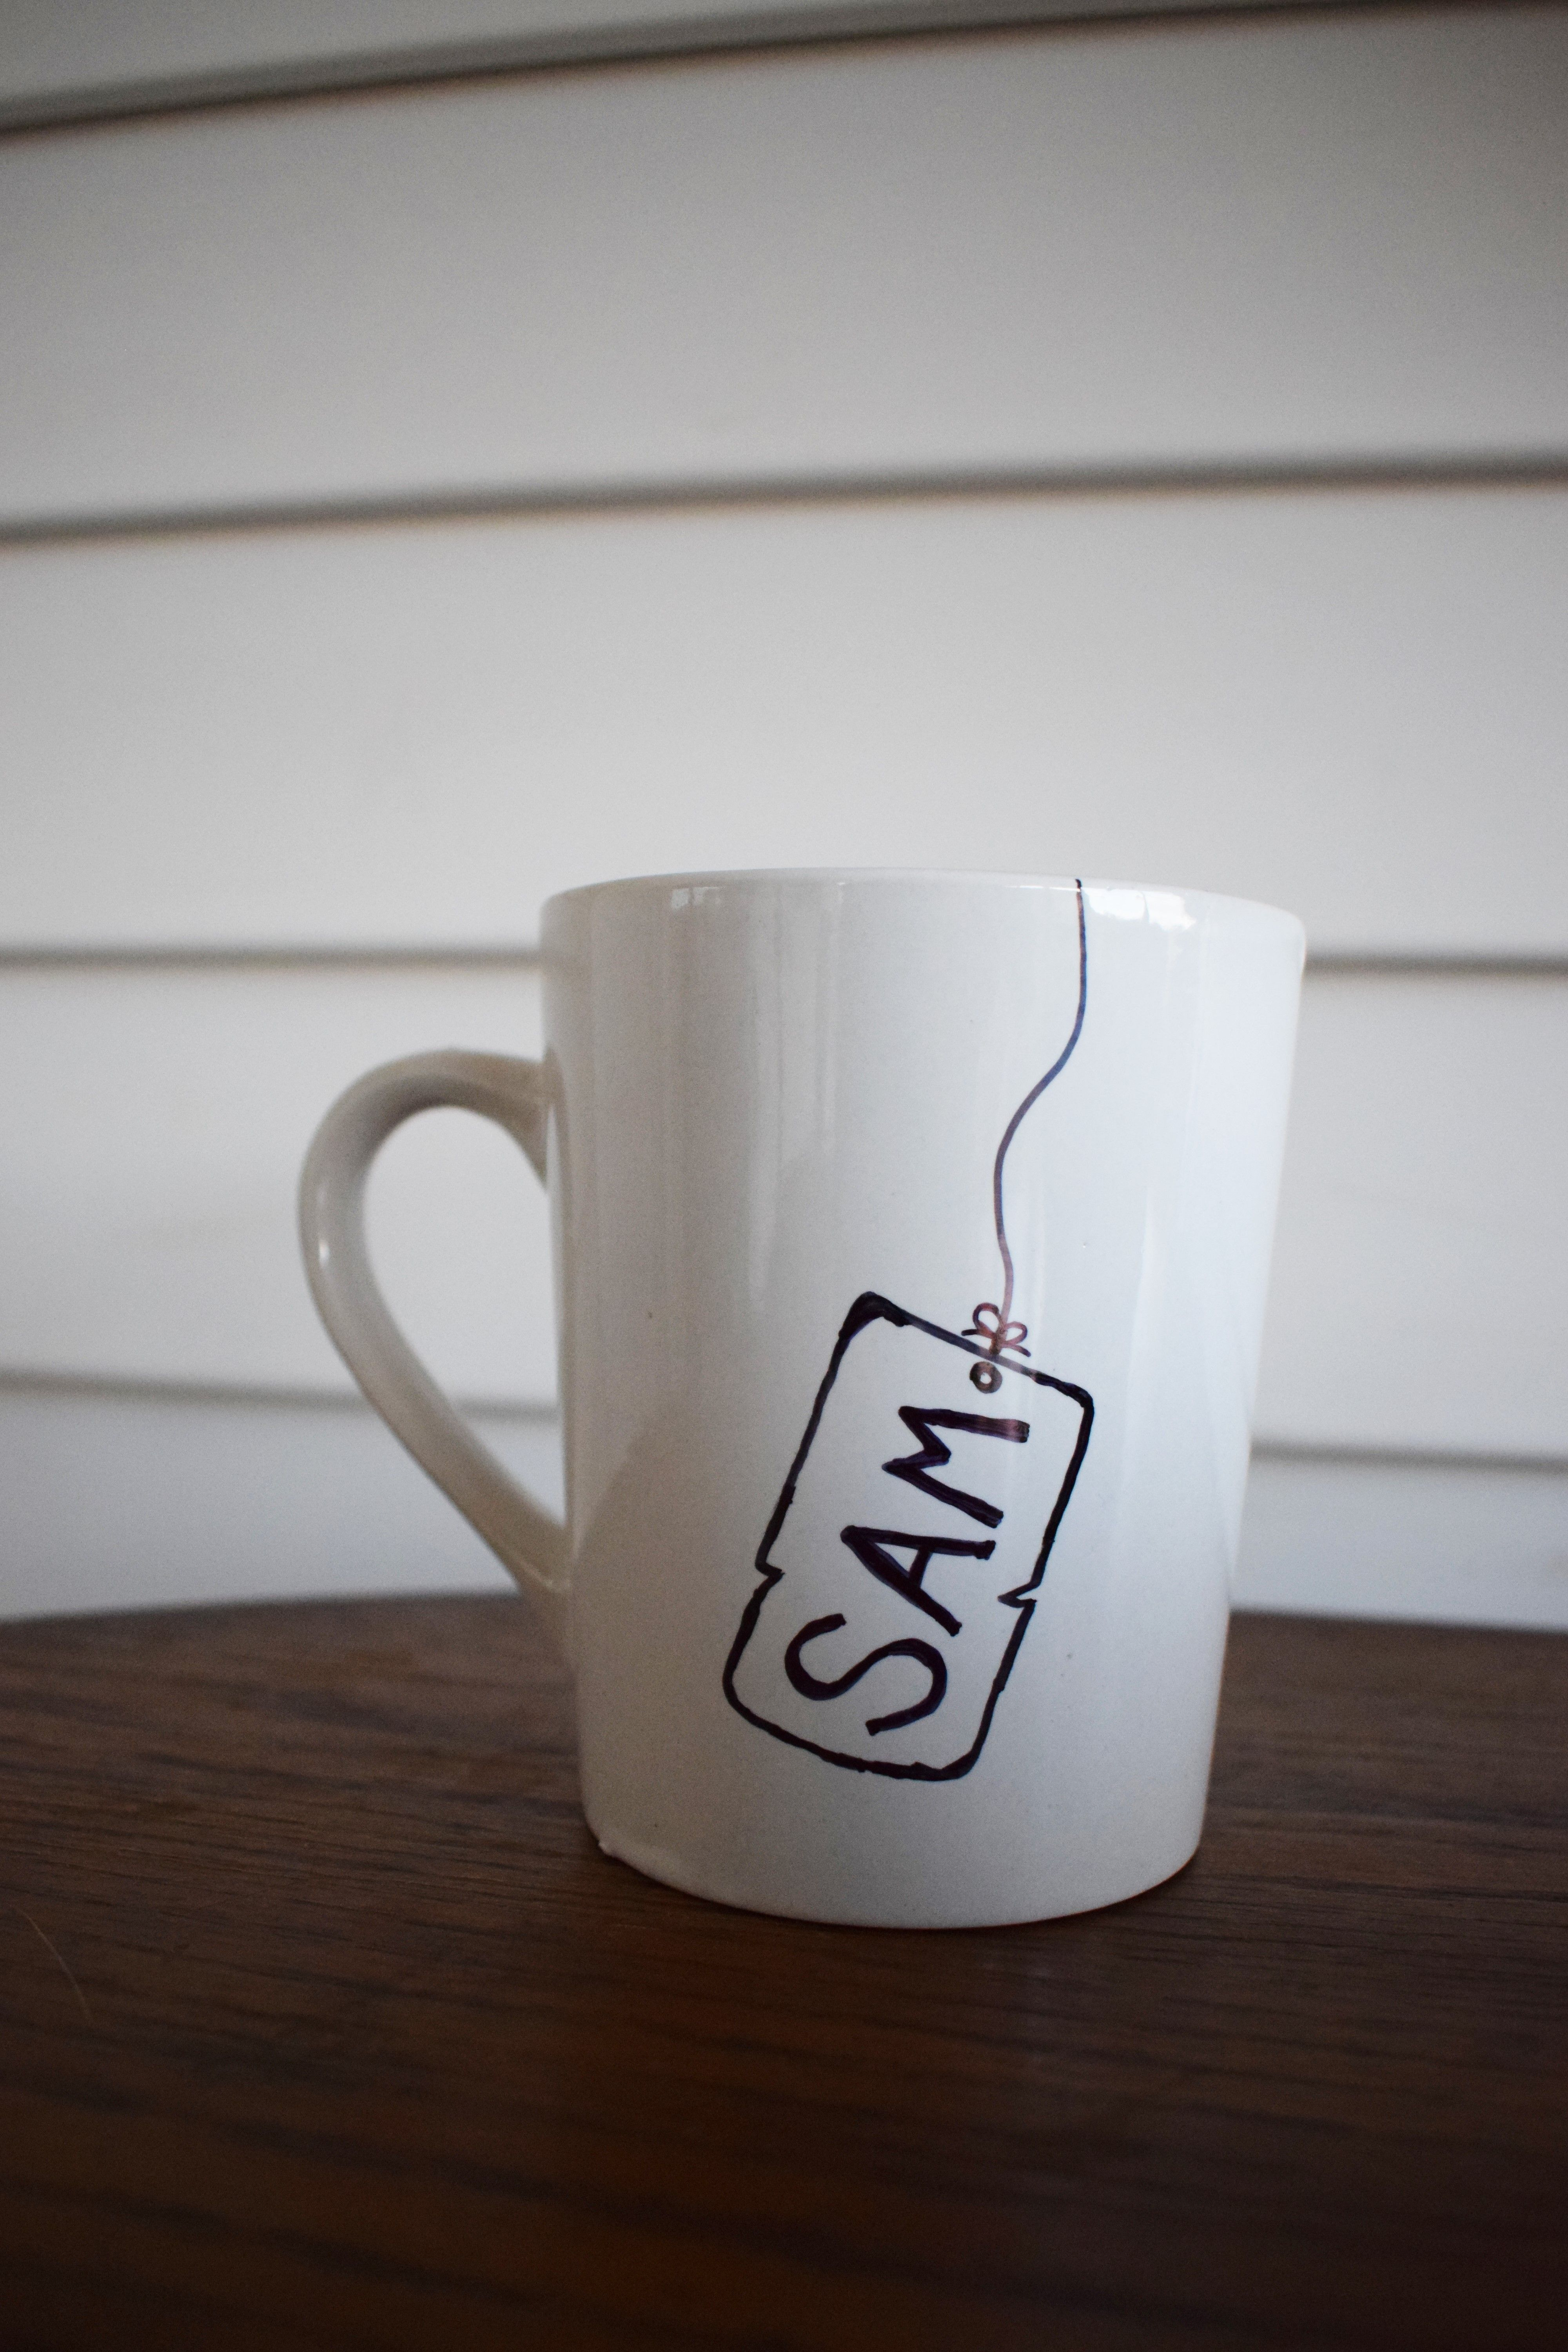 af7ecbff115 Shop handmade mugs and a percentage of the profits will go directly to a  charity of